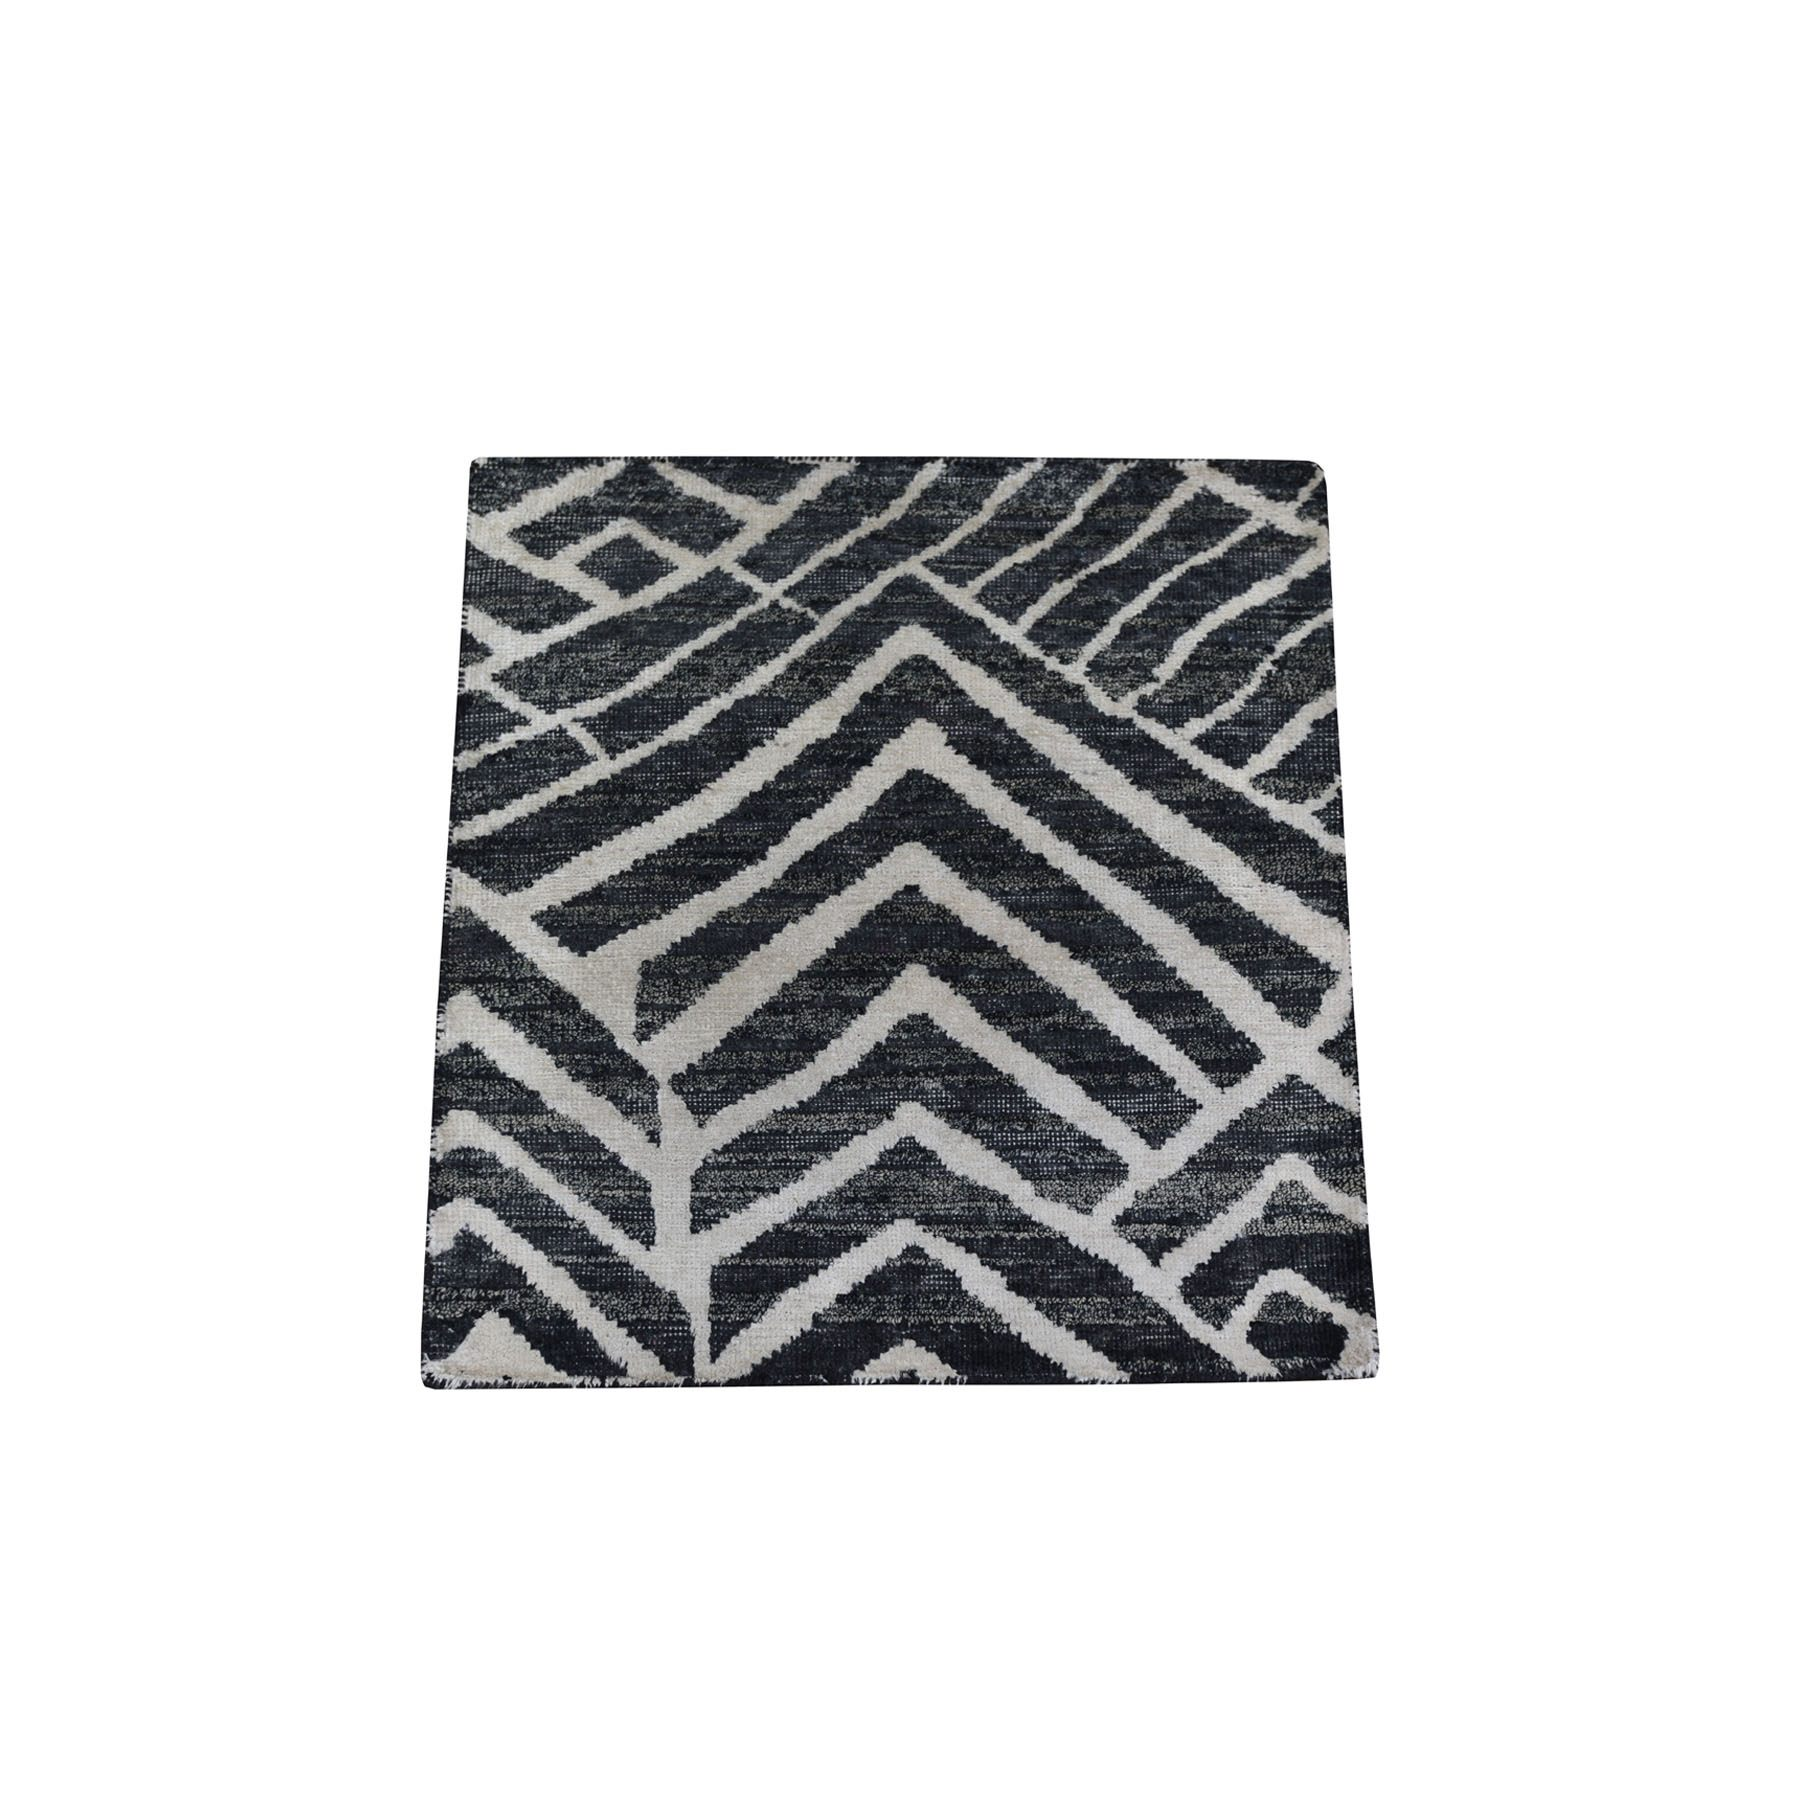 Modern-and-Contemporary-Hand-Knotted-Rug-248900